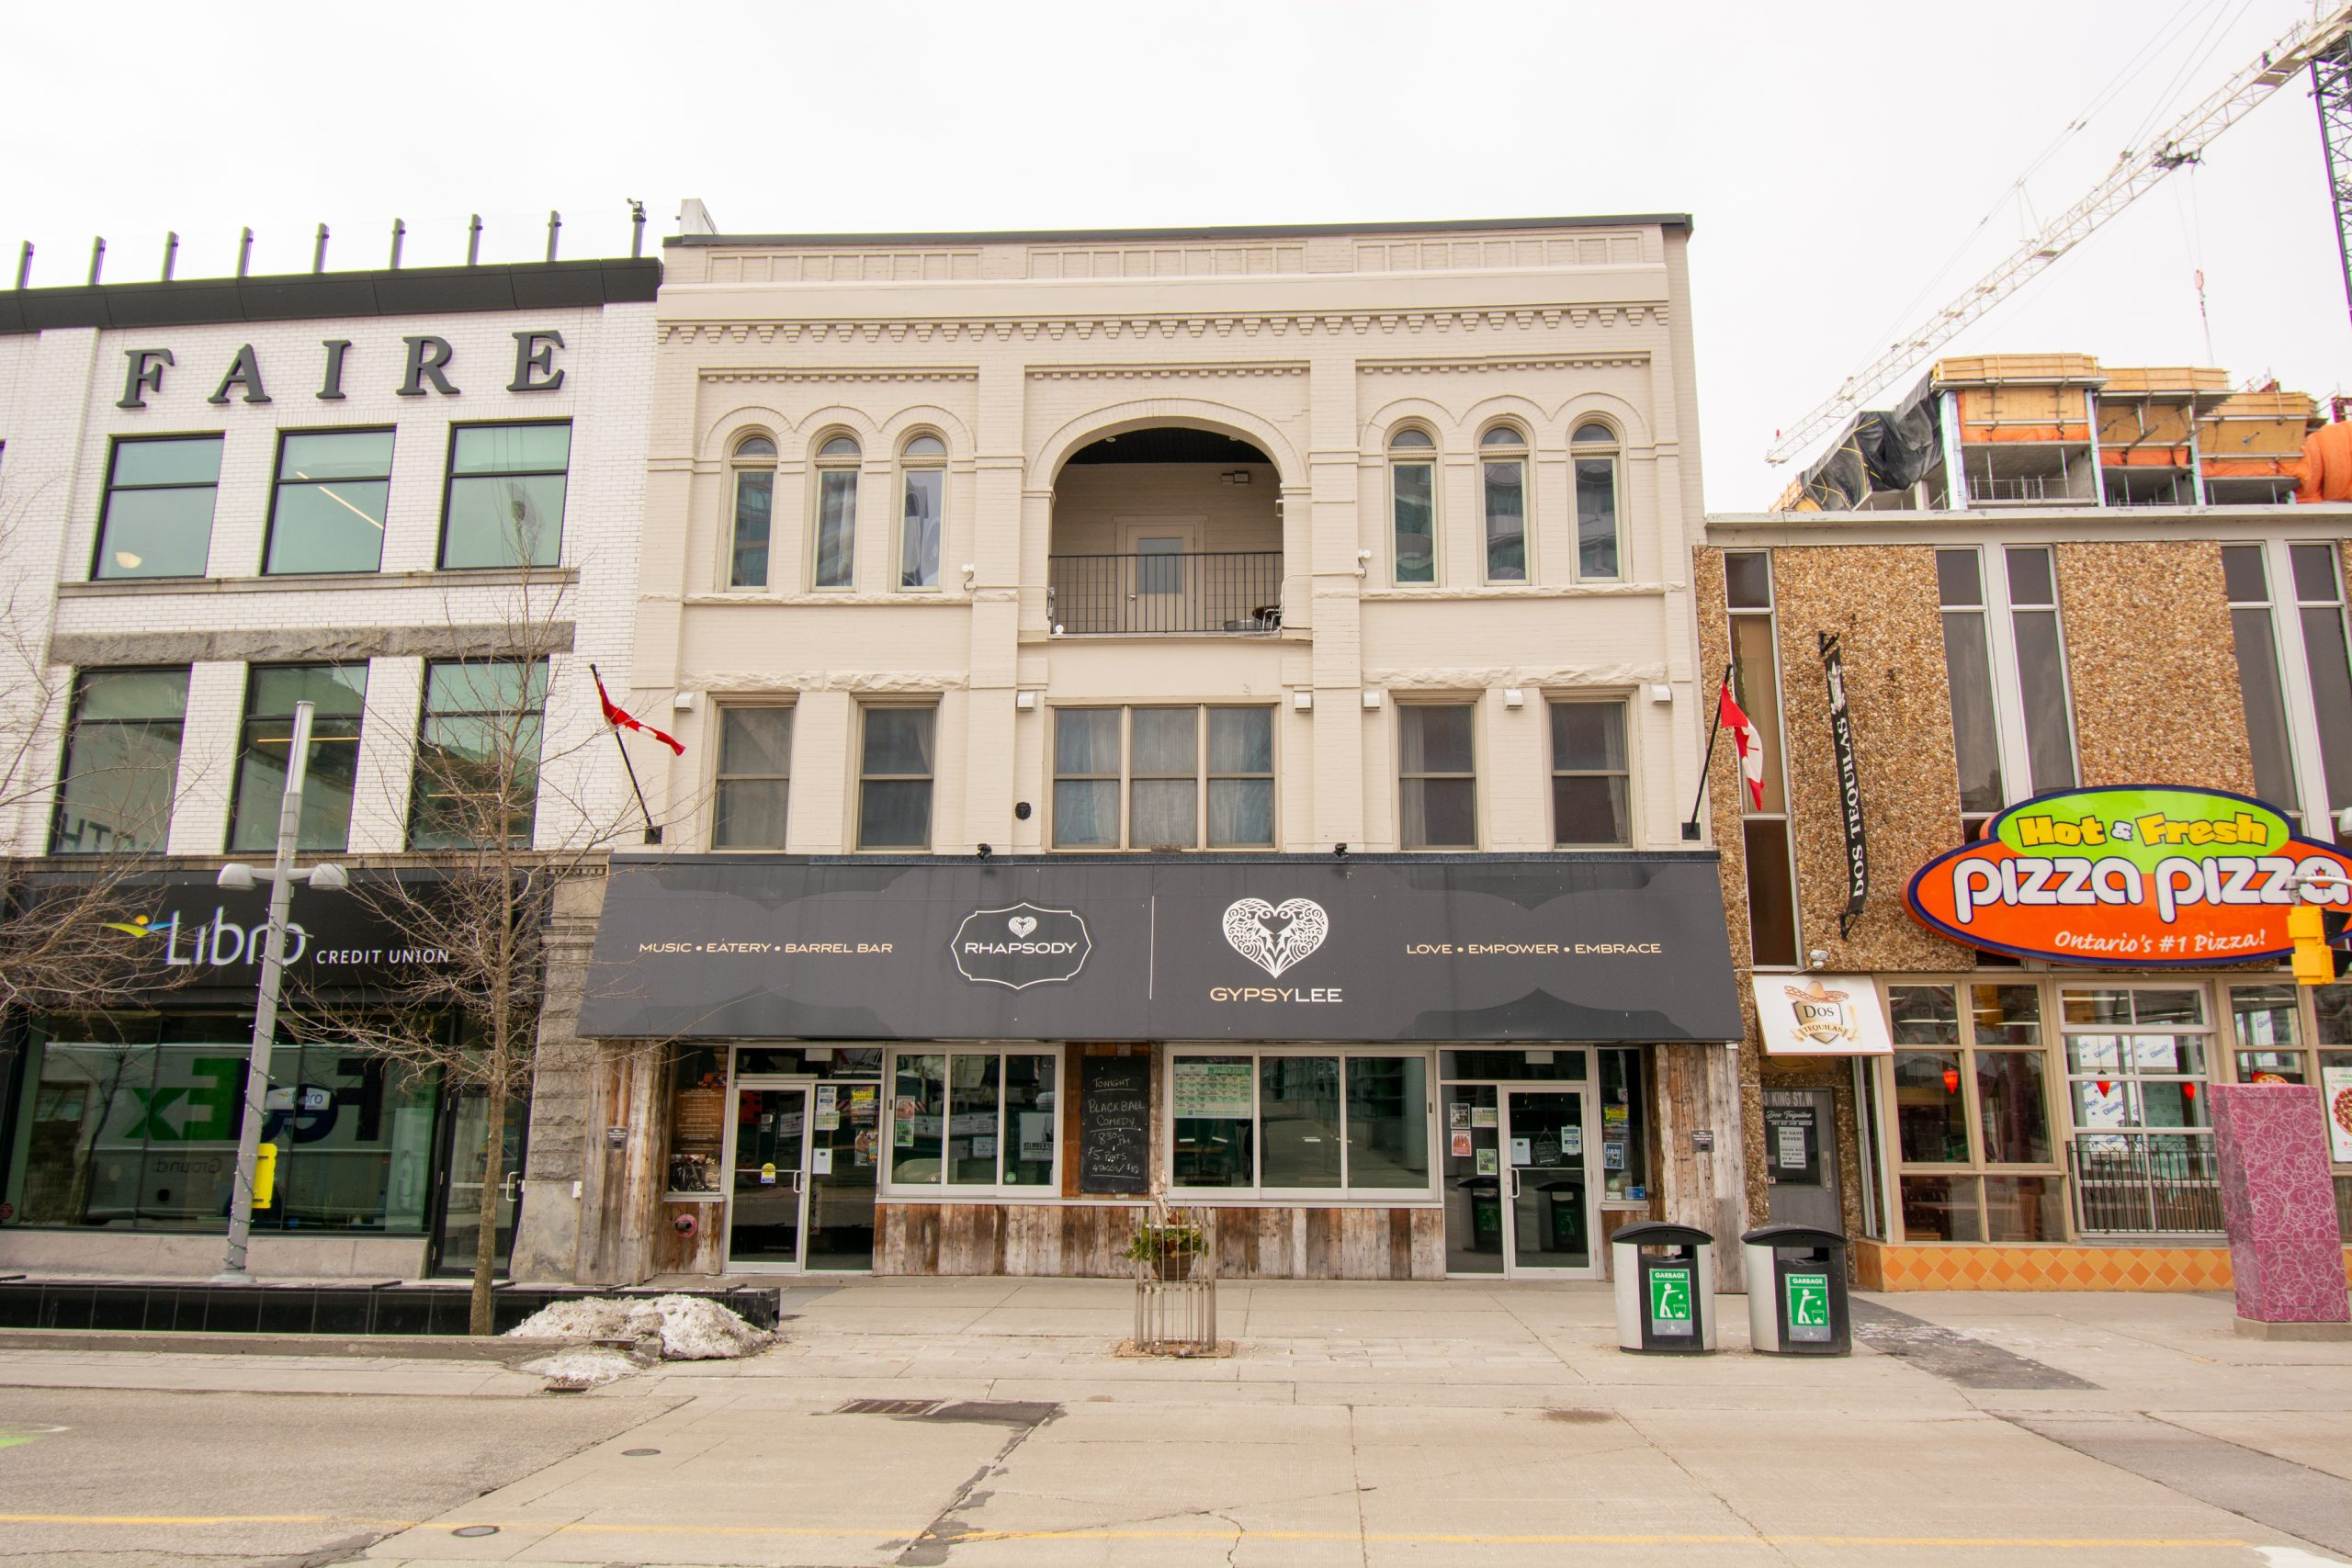 179 King Street West, Kitchener | Retail / Office Space For Lease